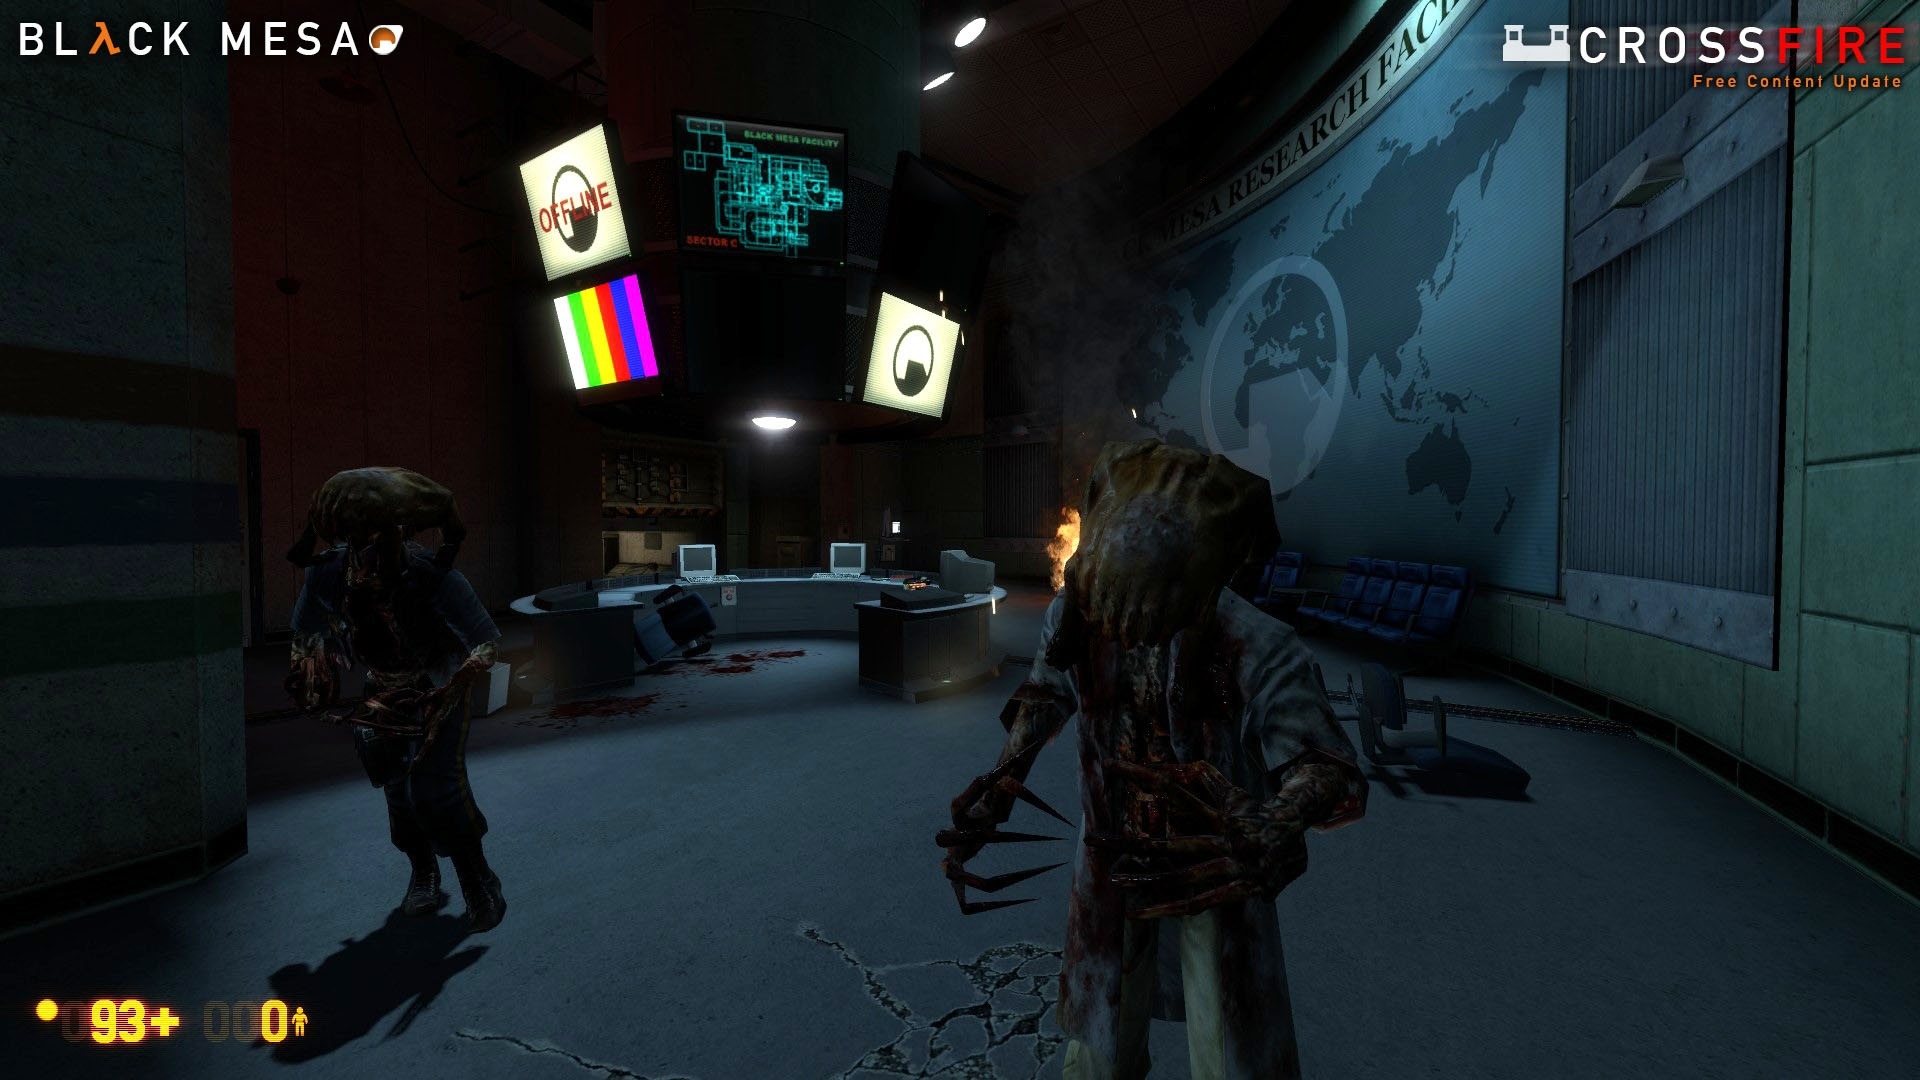 Black Mesa Awesome Remake of Half-Life to Launch on Linux as